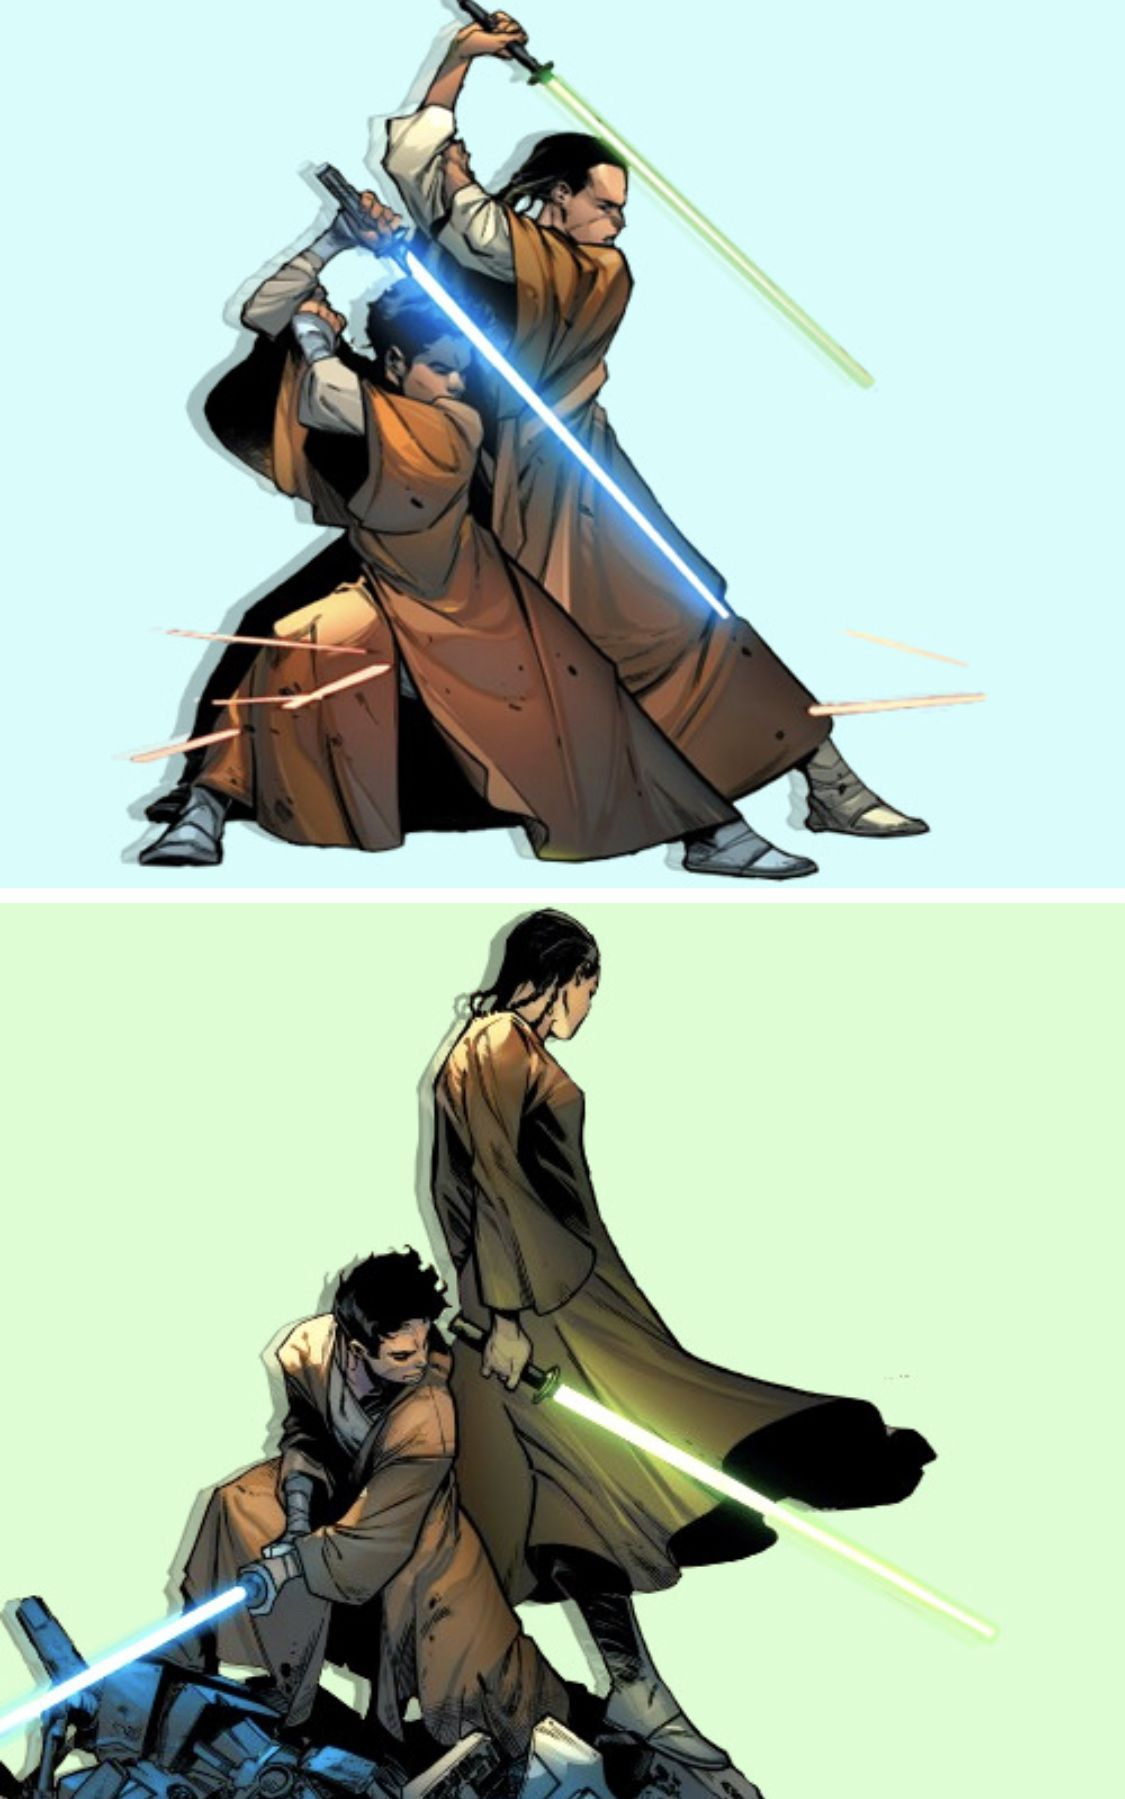 Master And Your Padawan Jedi Master And Your Padawan Star Wars Pictures Star Wars Images Star Wars Artwork